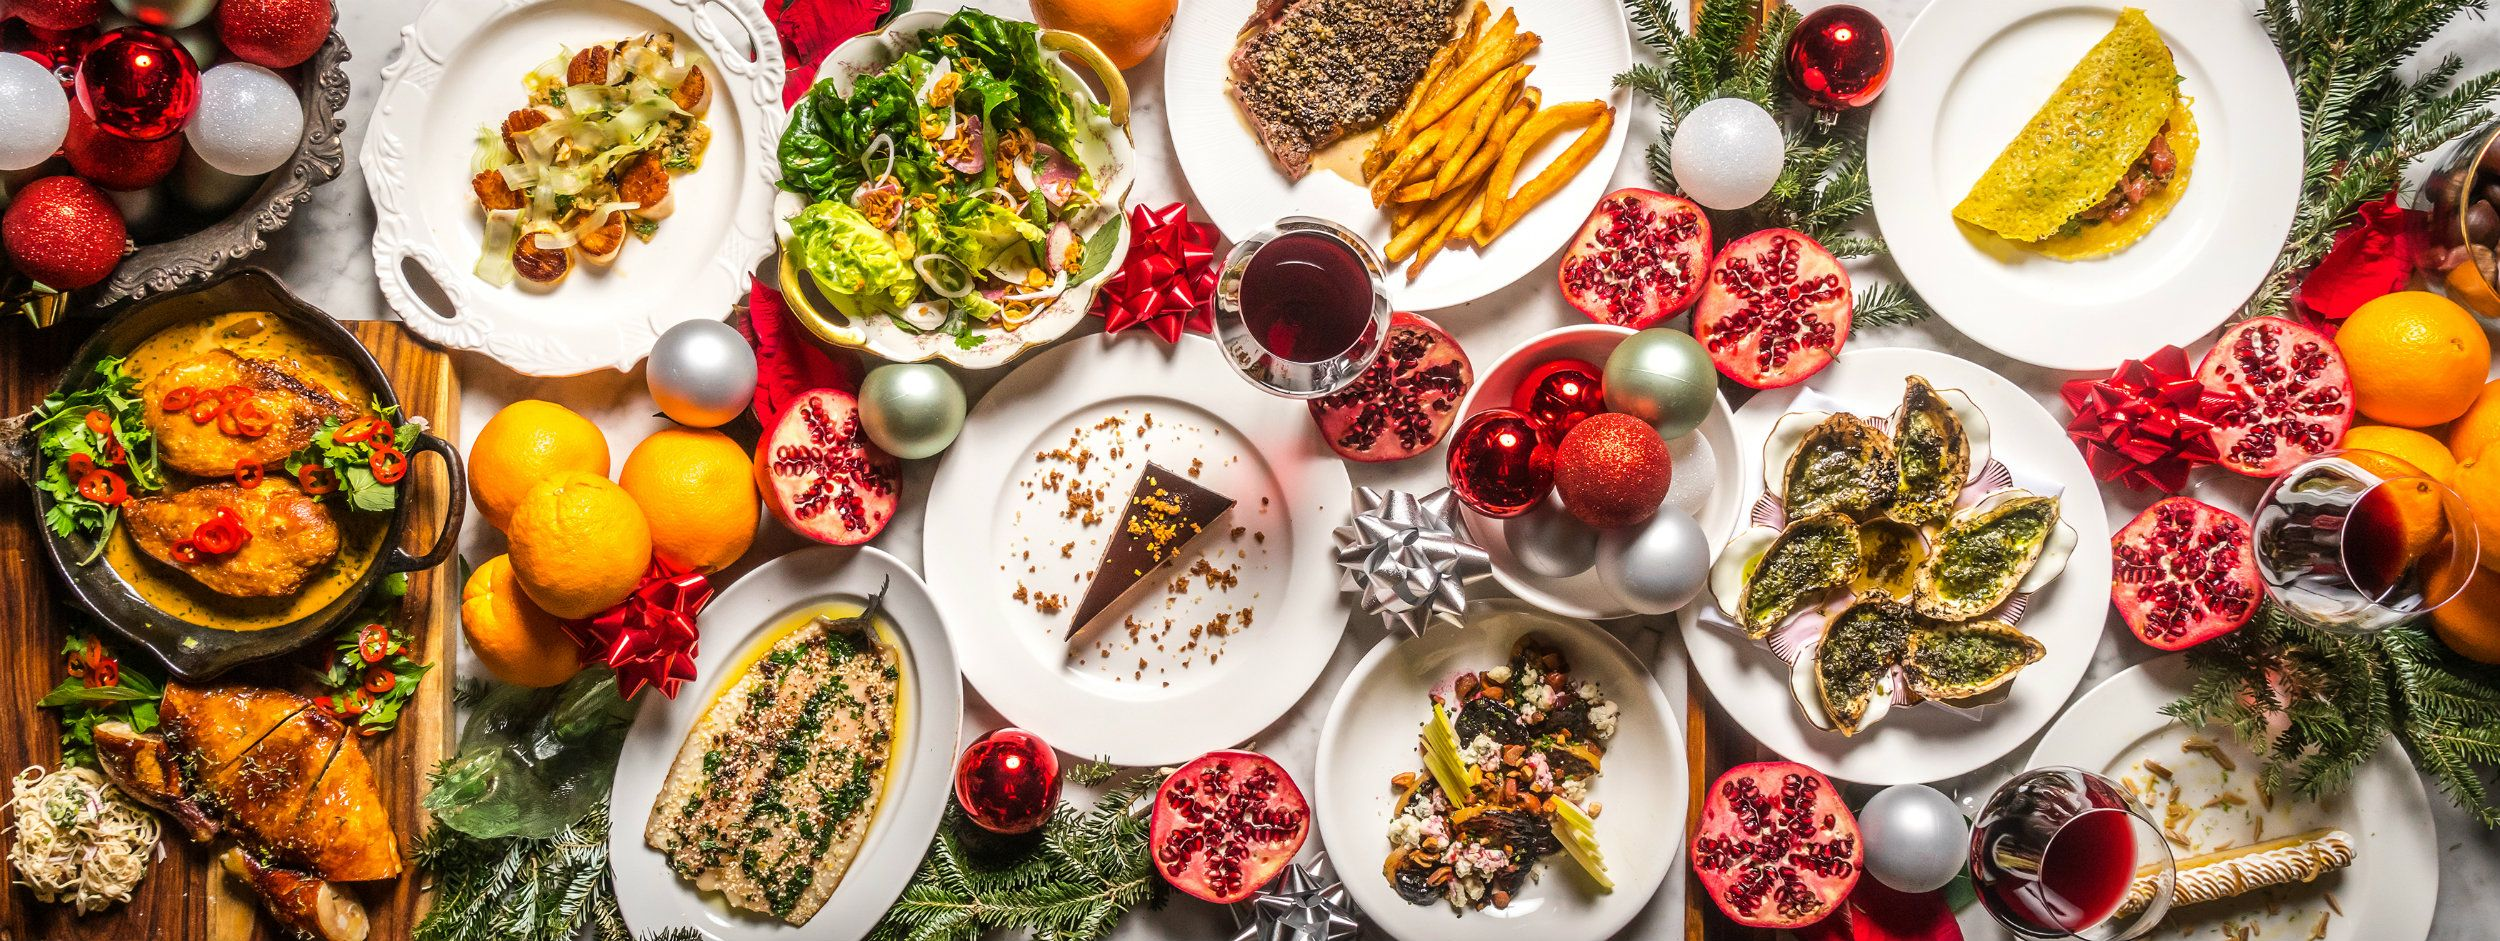 Sierra Restaurant Christmas Day 2020 24 NYC Restaurants Open On Christmas Day 2019   Where to Eat